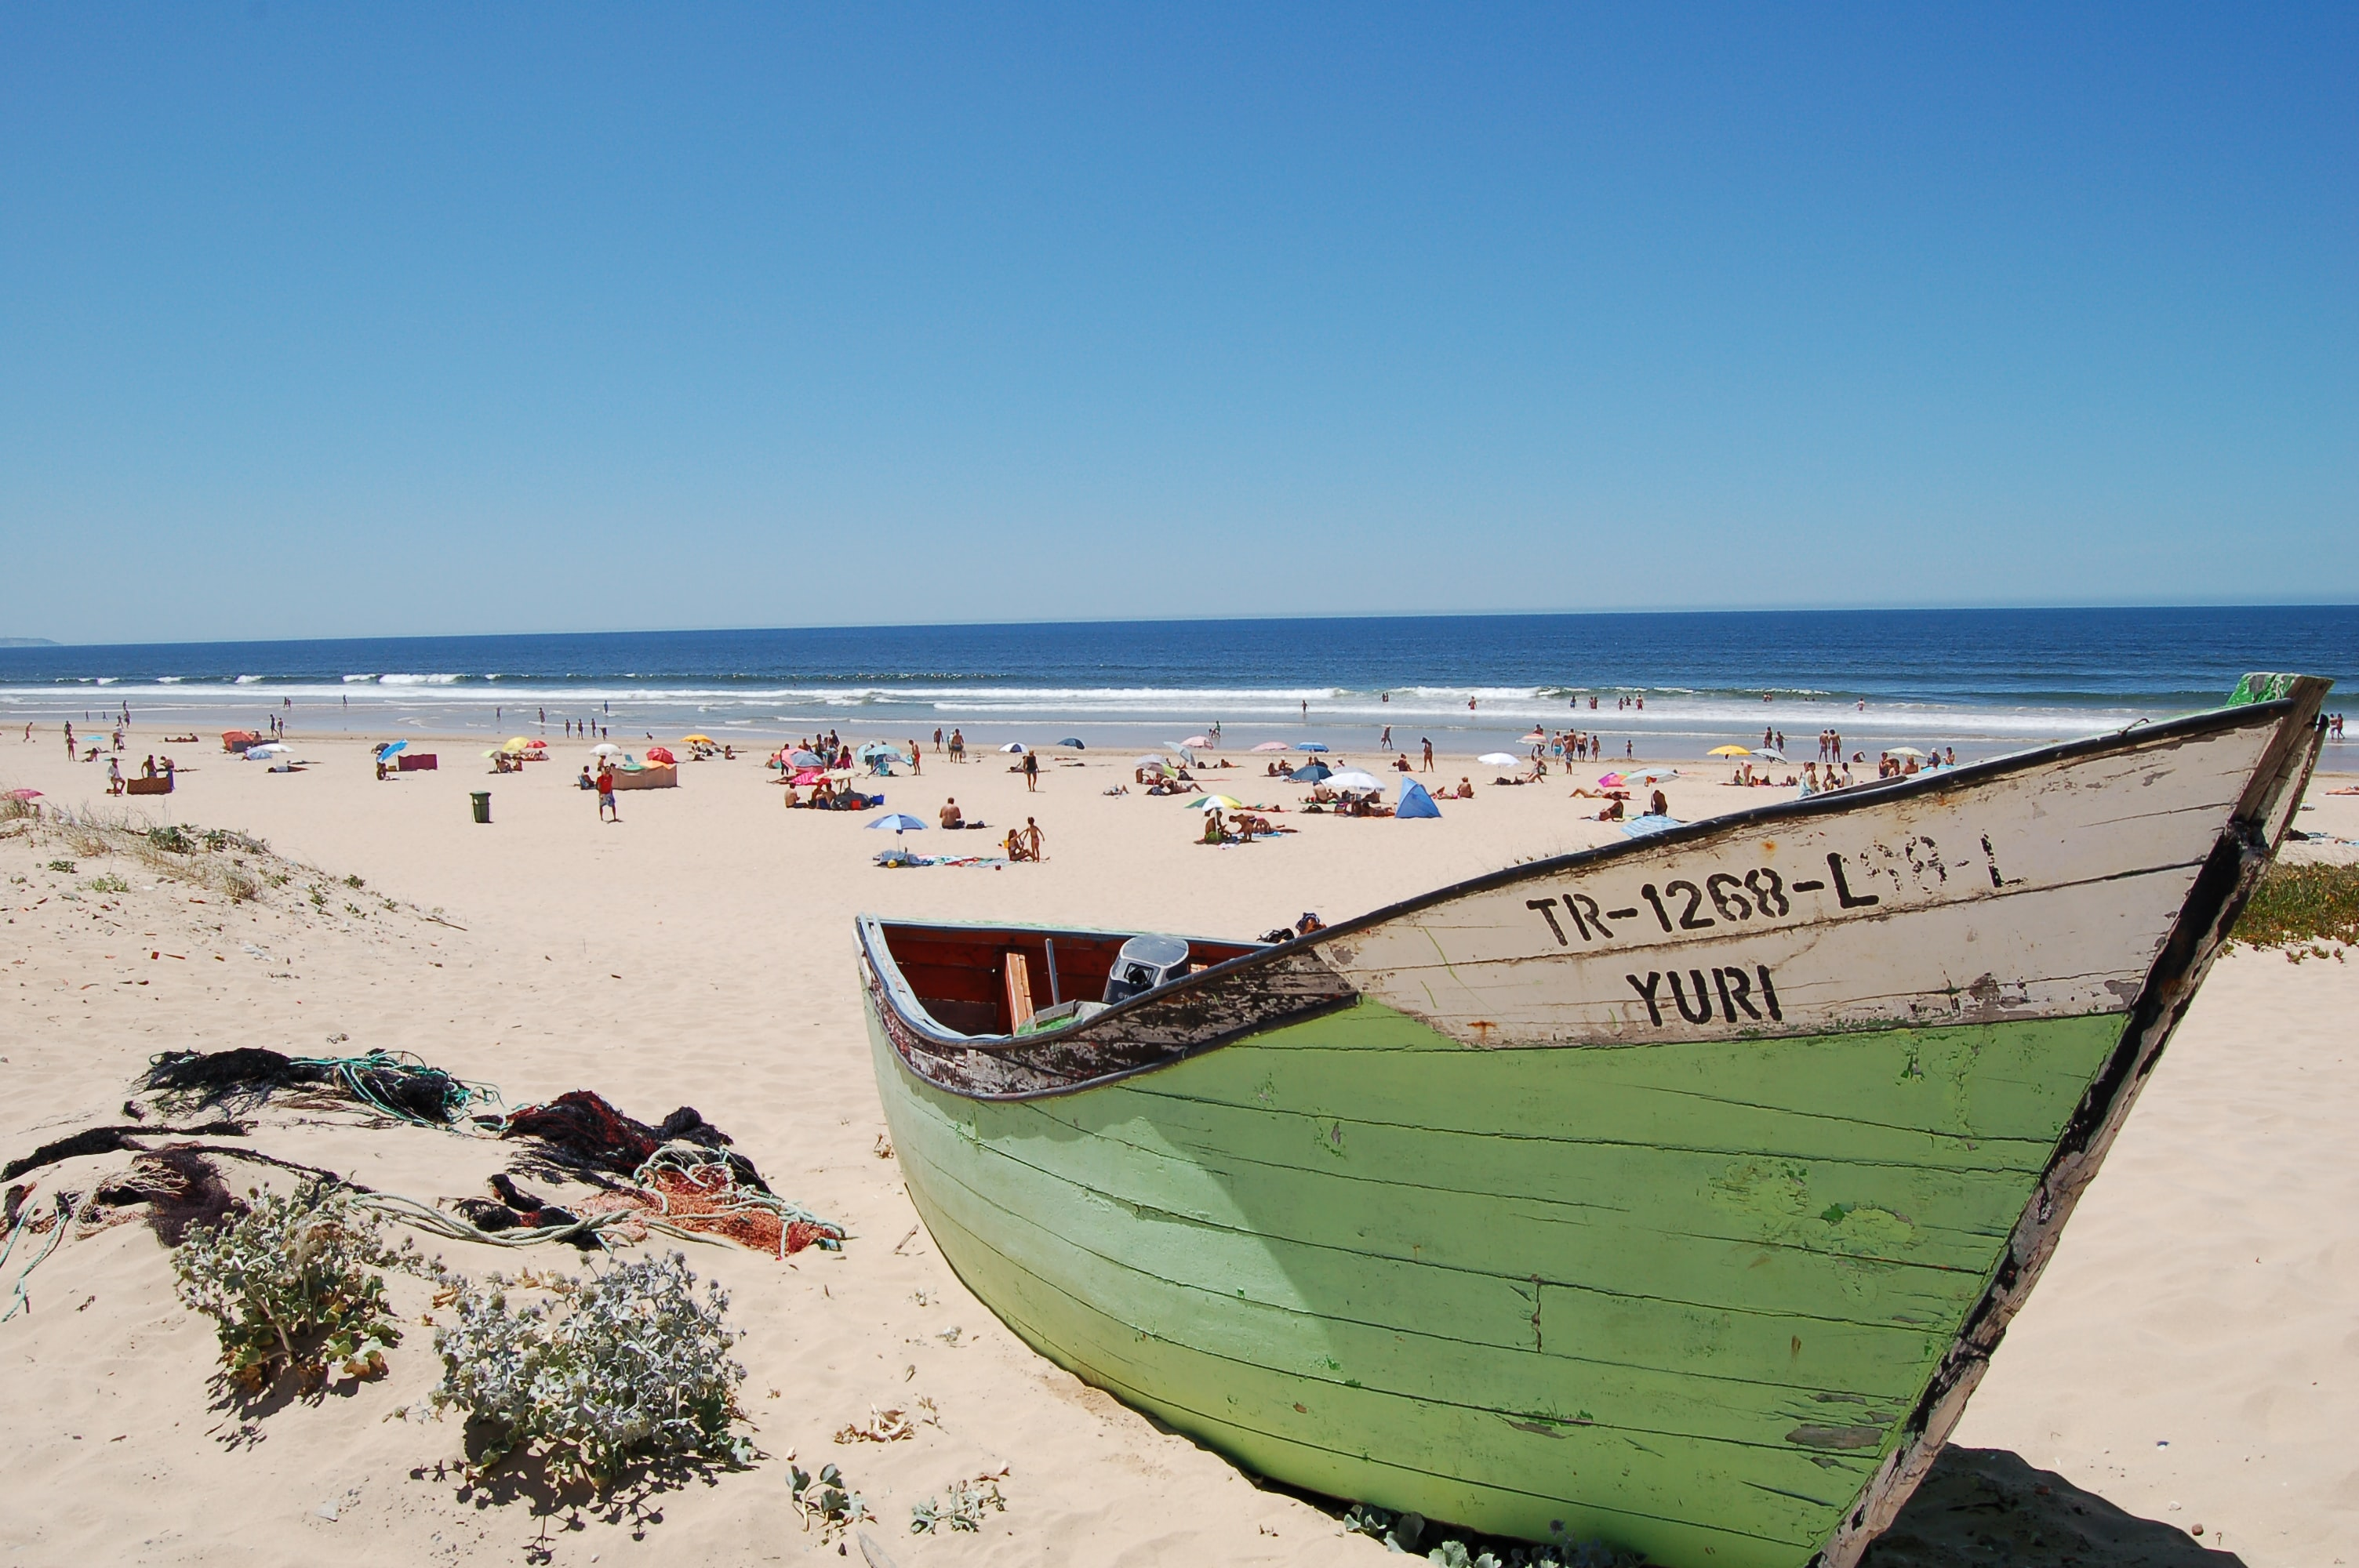 Exciting scenes at Lisbon beach featuring boat and the sunshine all over the shore